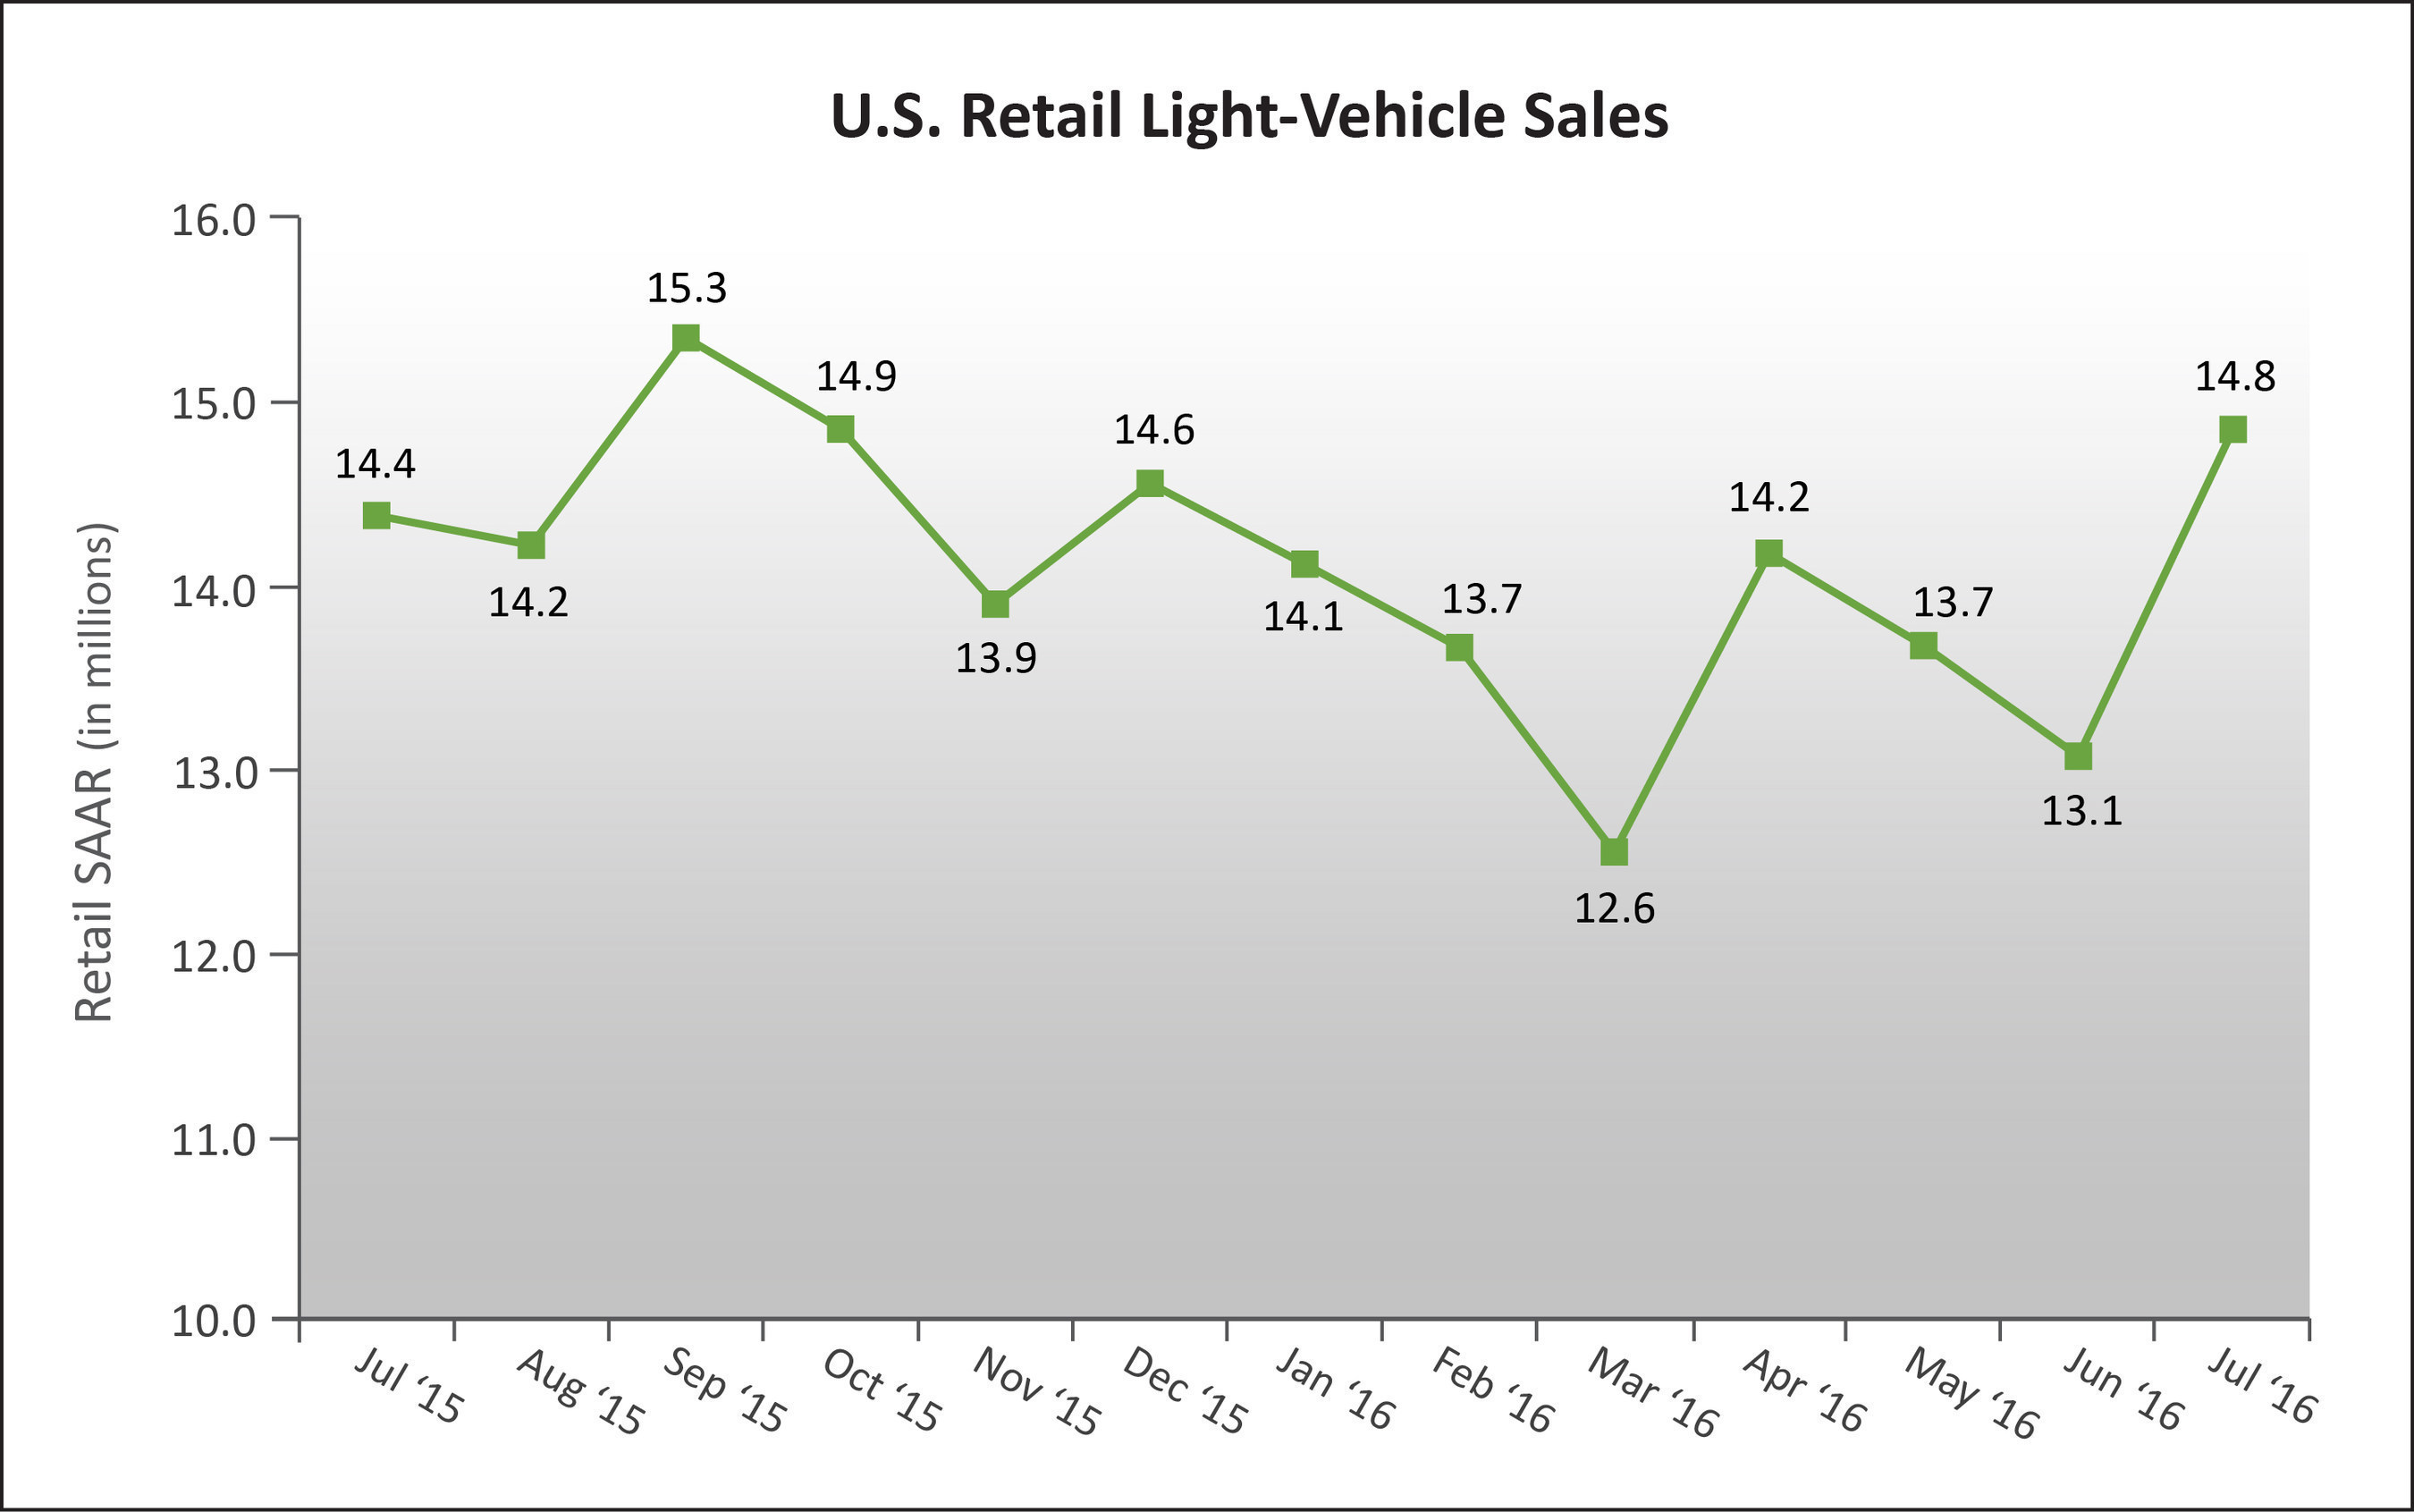 U.S. Retail SAAR--July 2015 to July 2016 (in millions of units) Source: Power Information Network (PIN) from J.D. Power